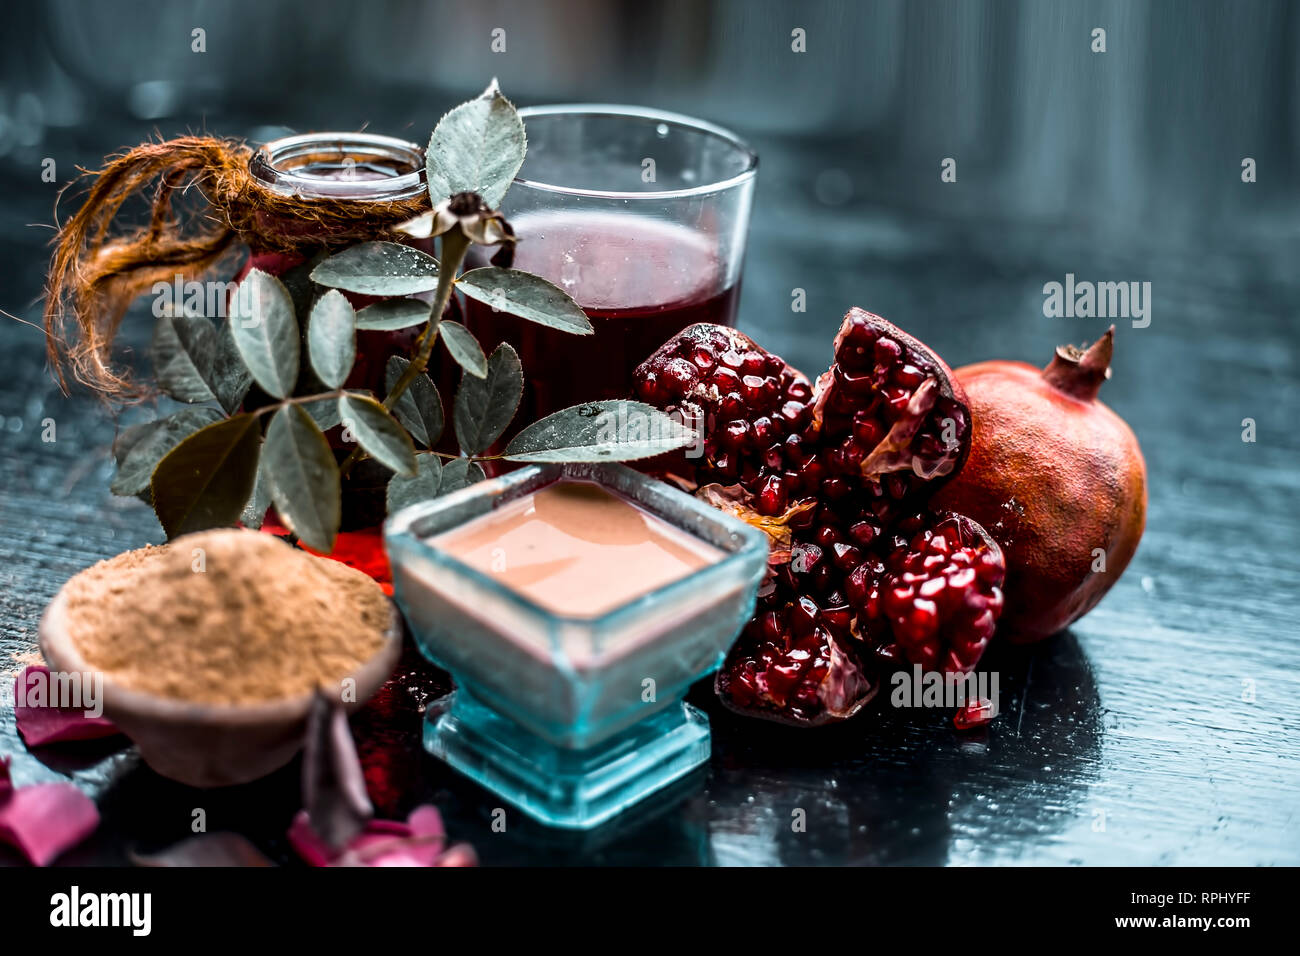 Herbal and organic face pack of pomegrante with some raw pomegranate juice and fuller's earth or mulpani mitti,and rose water on wooden surface - Stock Image